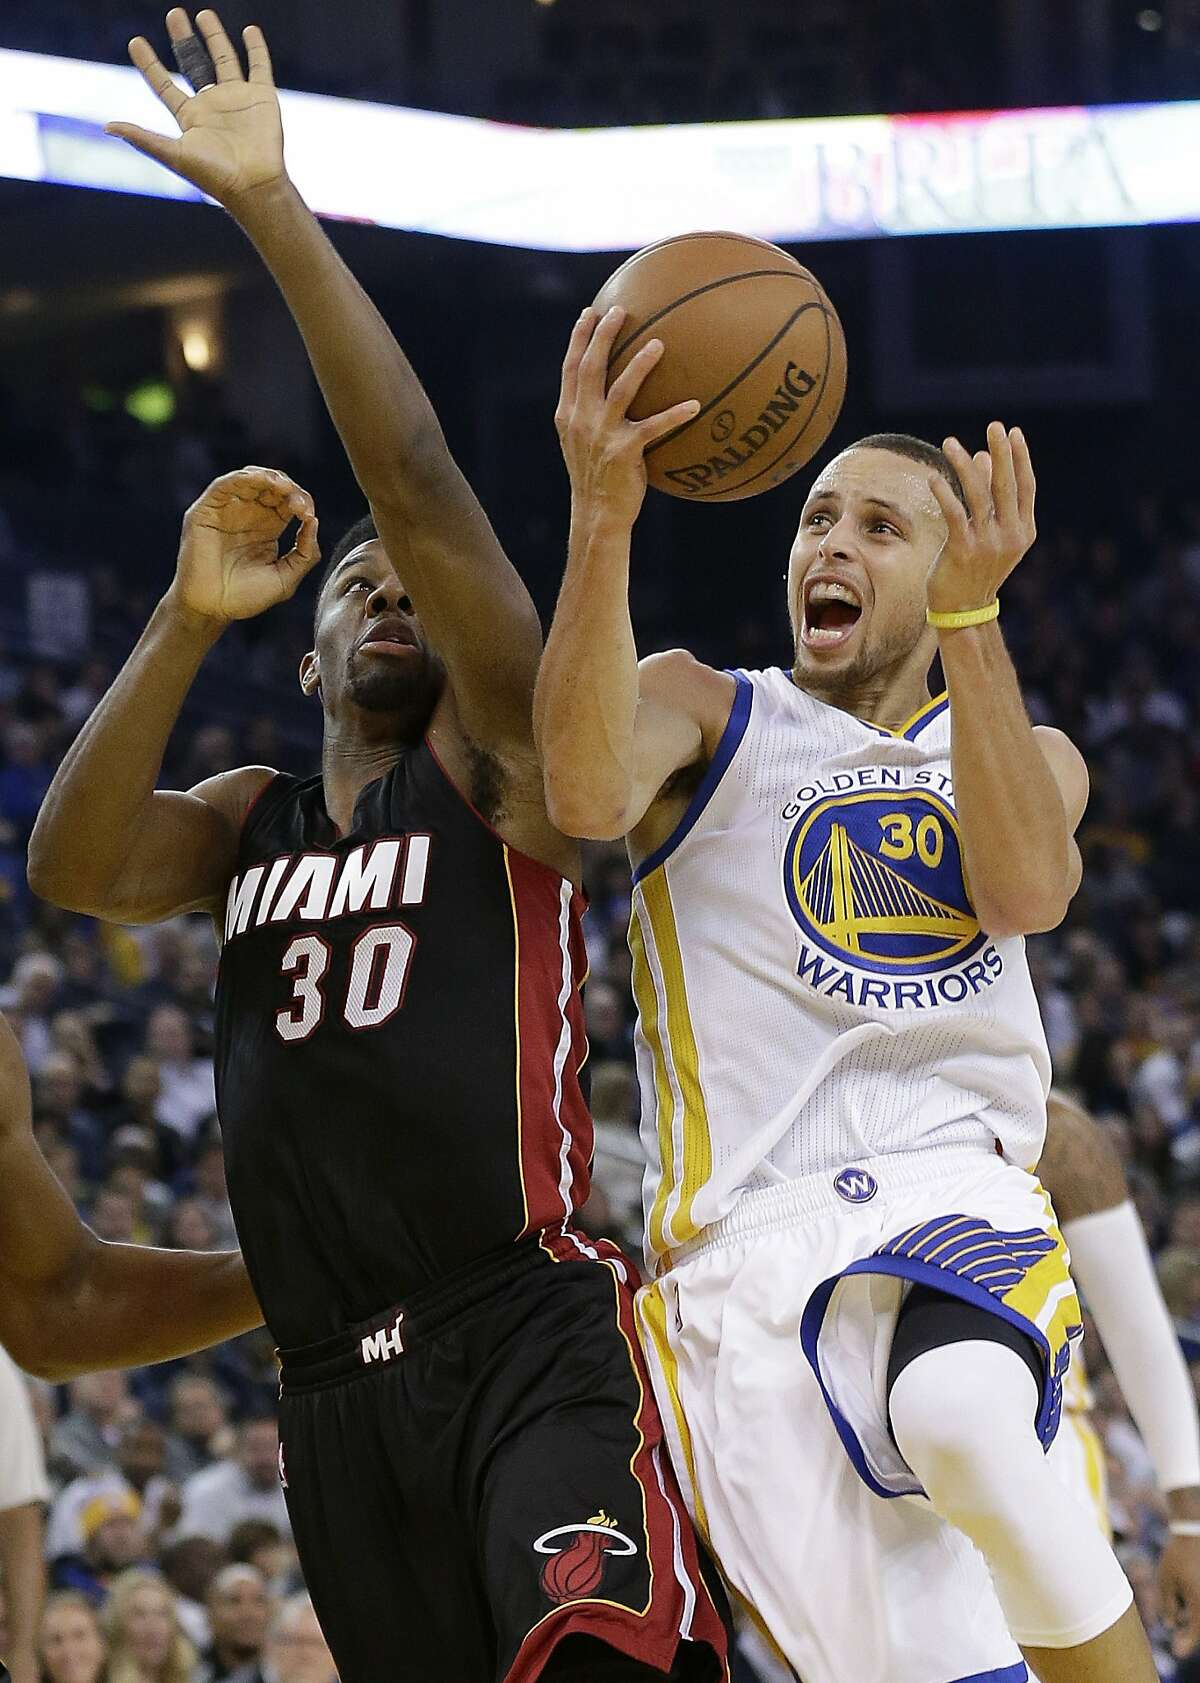 Golden State Warriors guard Stephen Curry shoots against Miami Heat guard Norris Cole during the second half of an NBA basketball game in Oakland, Calif., Wednesday, Jan. 14, 2015. The Warriors won 104-89. (AP Photo/Jeff Chiu)